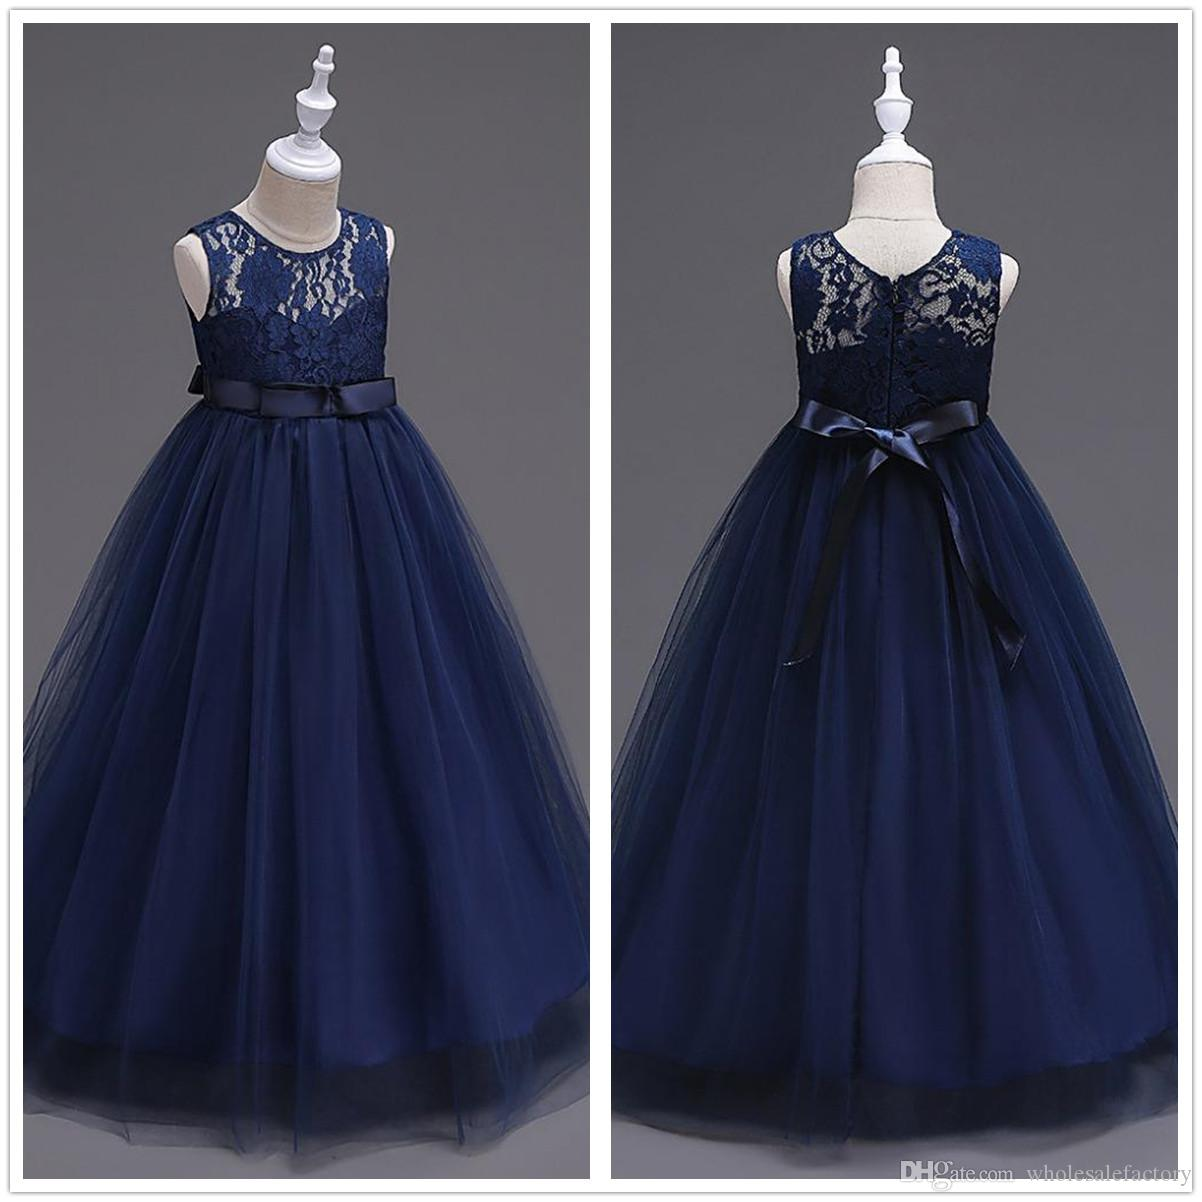 Cute Navy Blue Tulle A Line Sash Long Flower Girls Dresses Crew